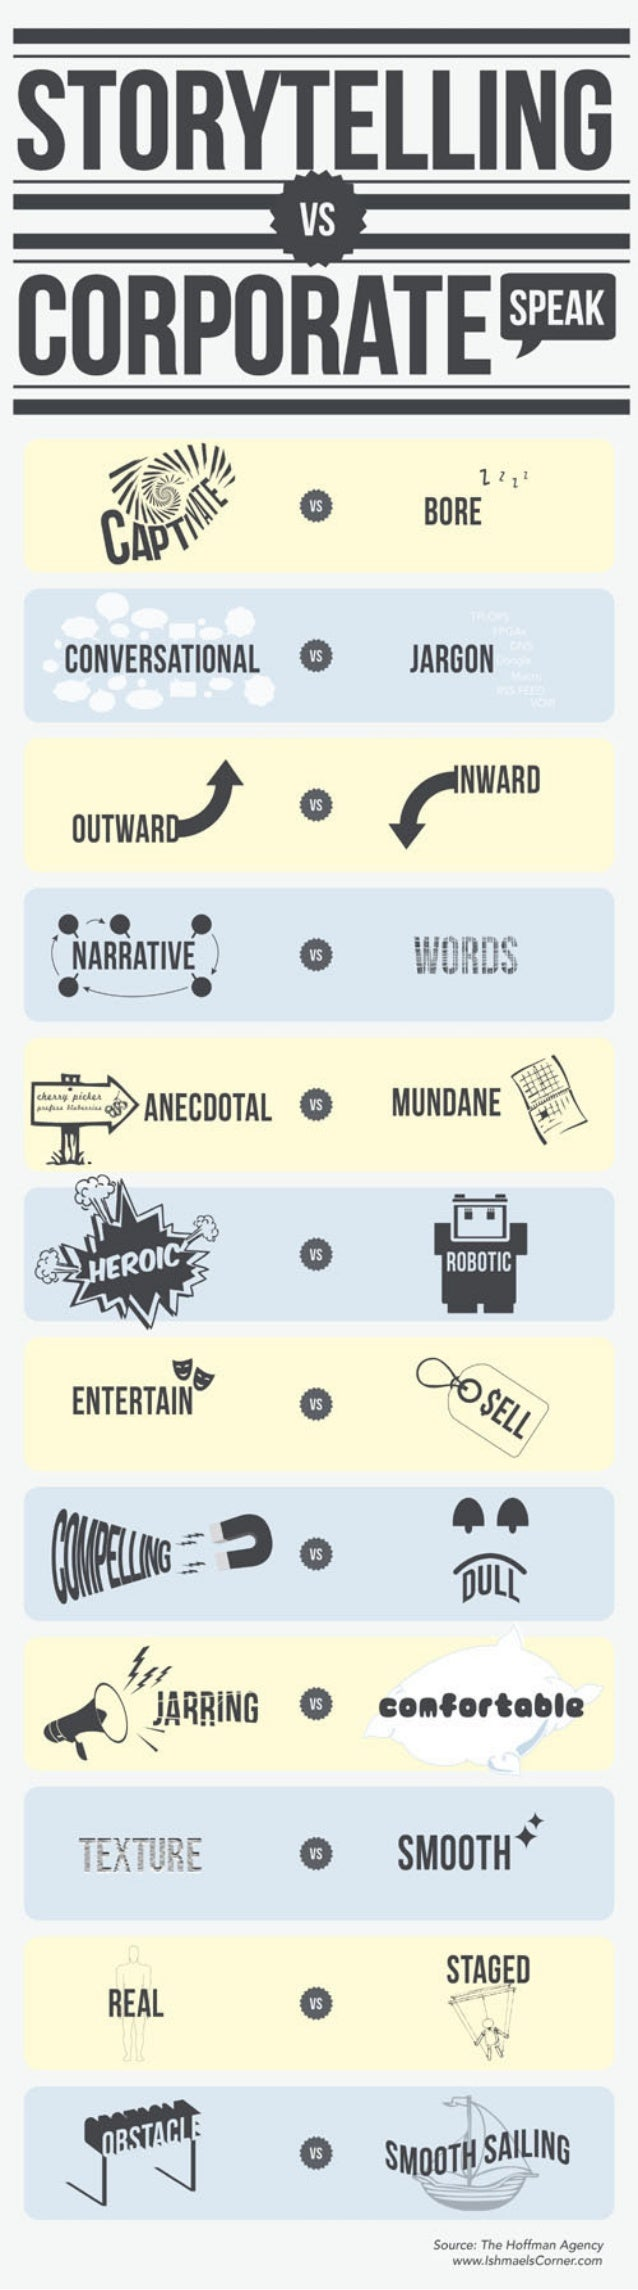 Storytelling vs. Corporate Speak [infographic]